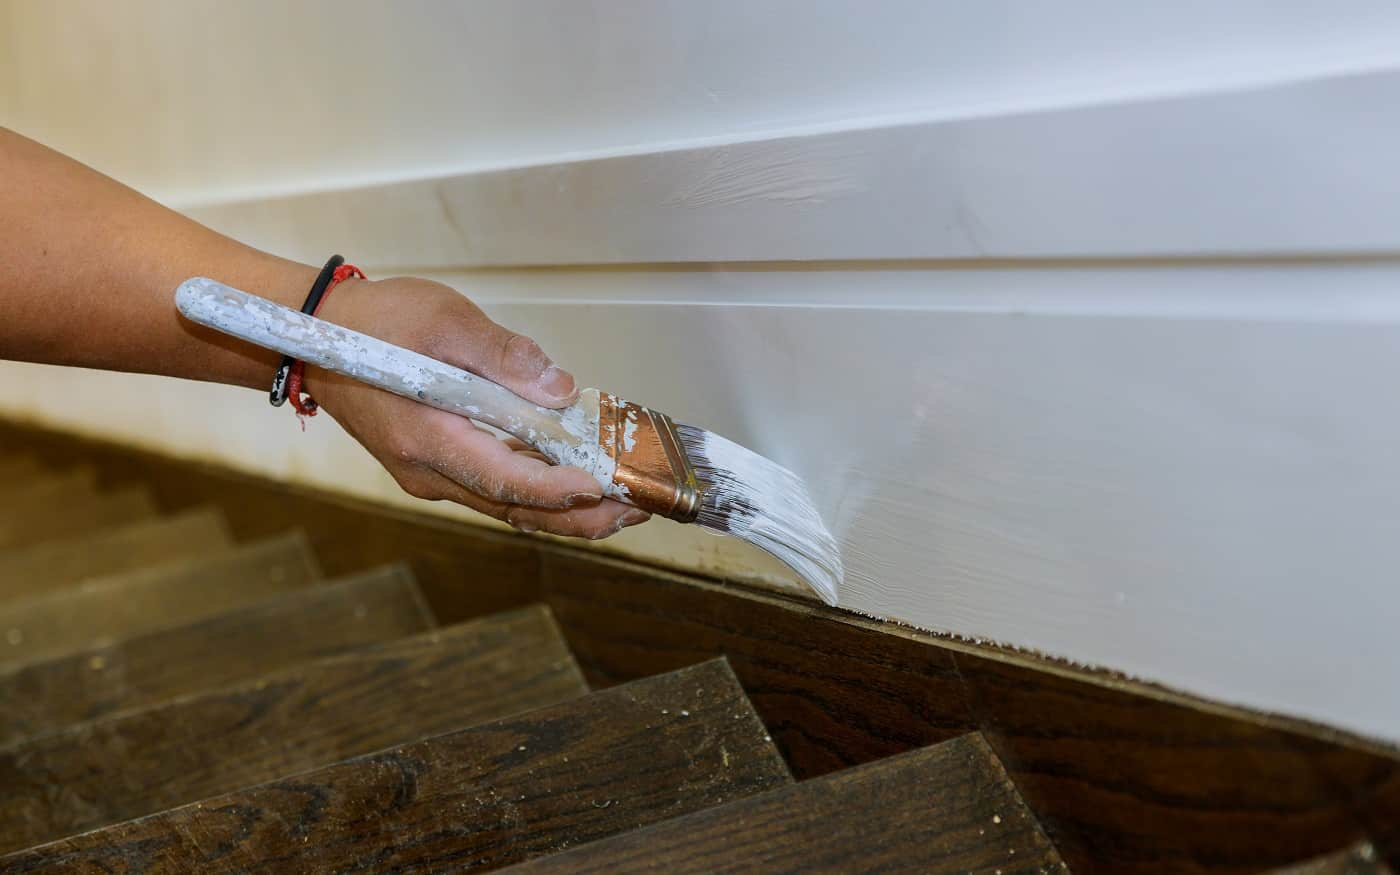 Working contractor painter hands with painting the wood molding trim on stairs with brush